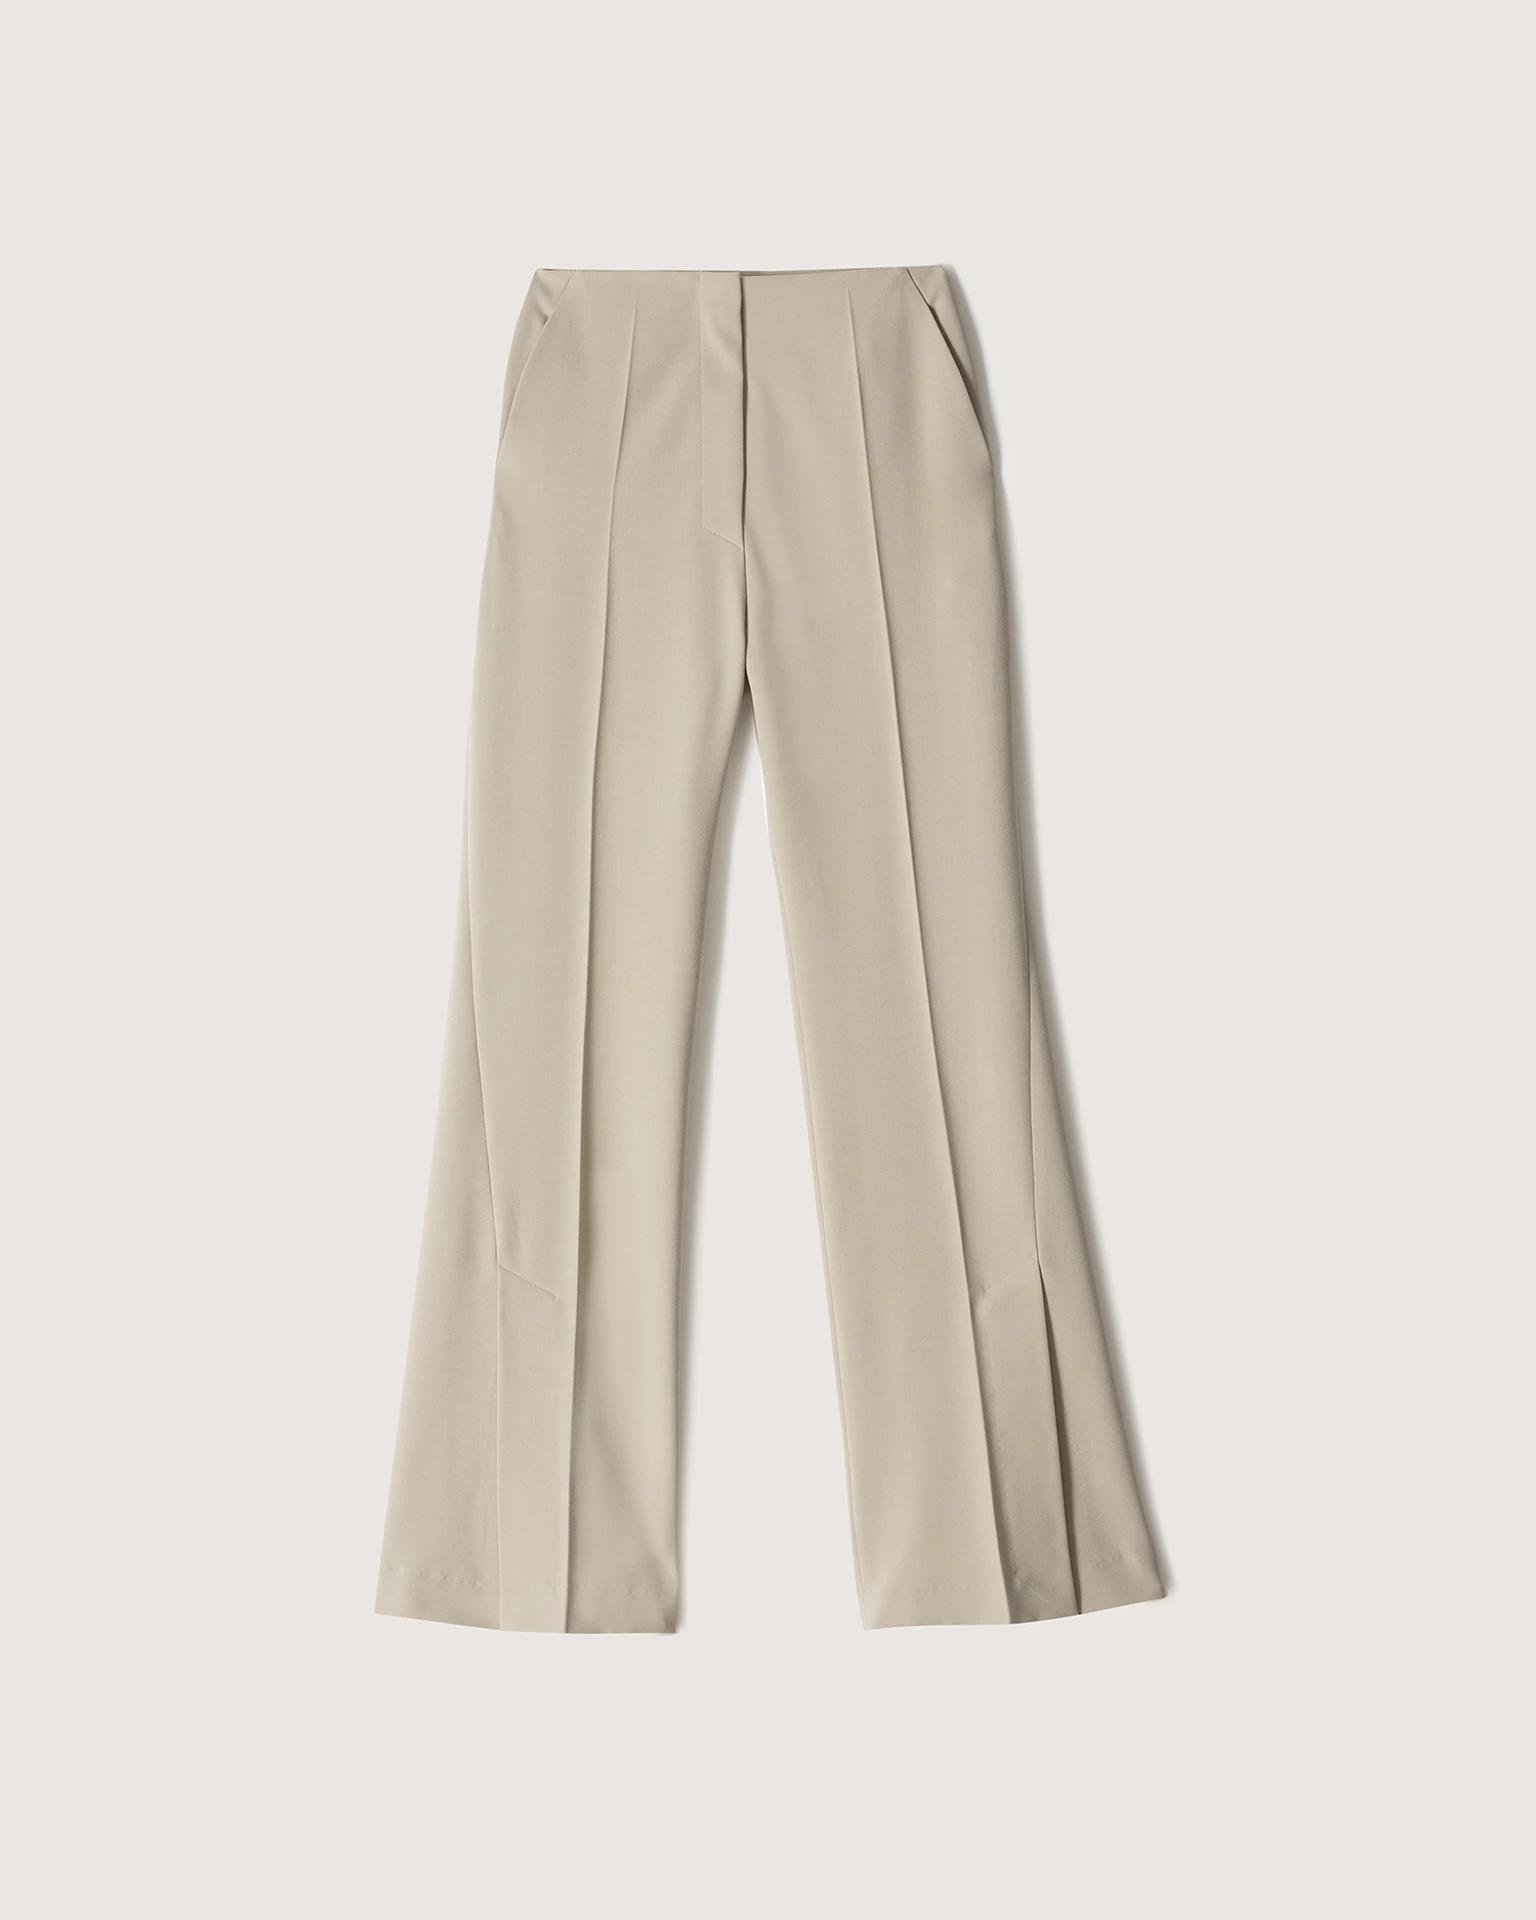 TULIP - Eco cady suiting wide-leg pants - Stone 4